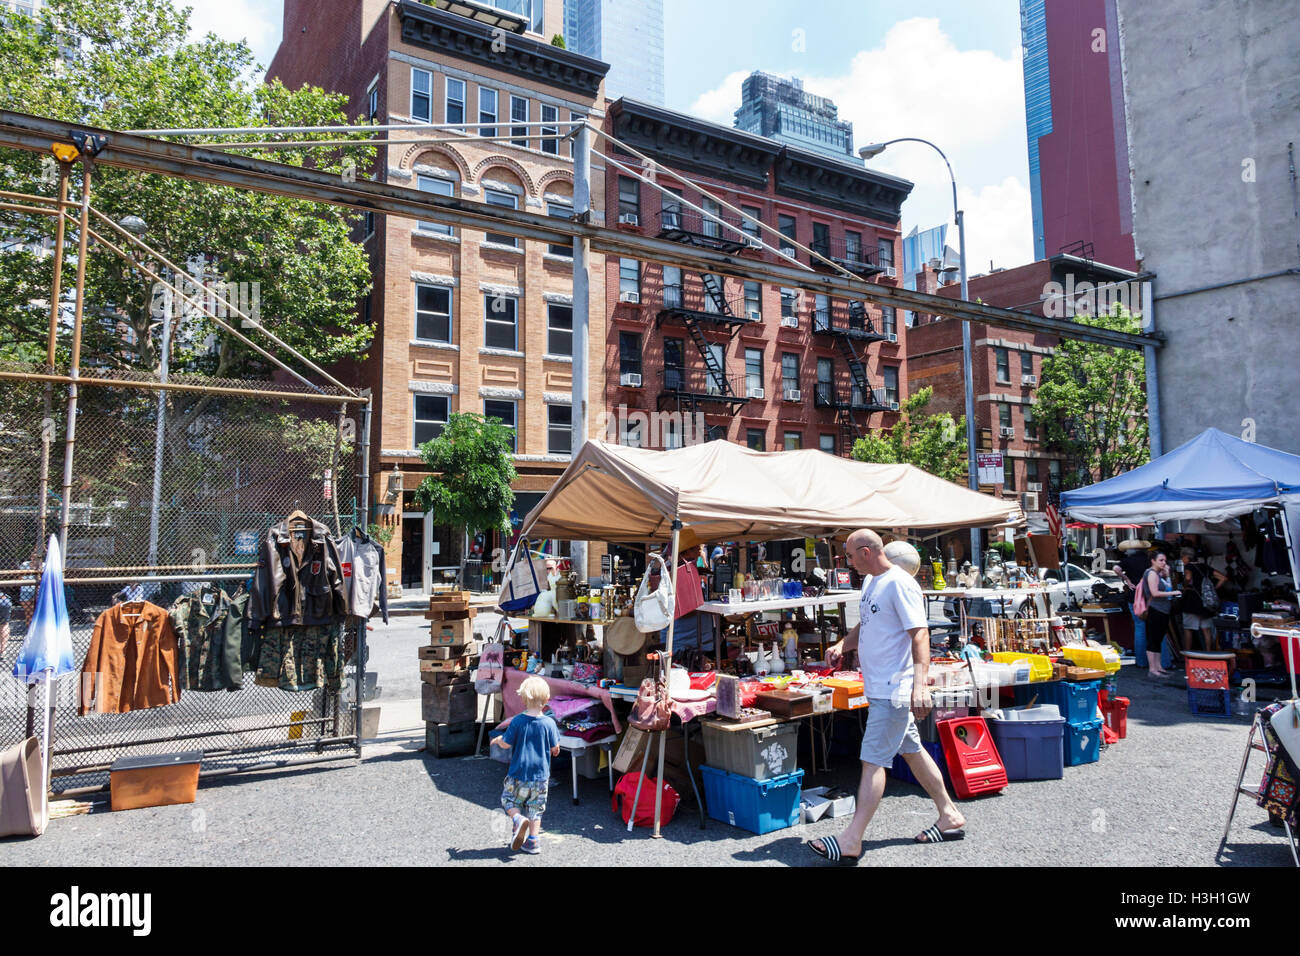 Shopping In Hells Kitchen Nyc